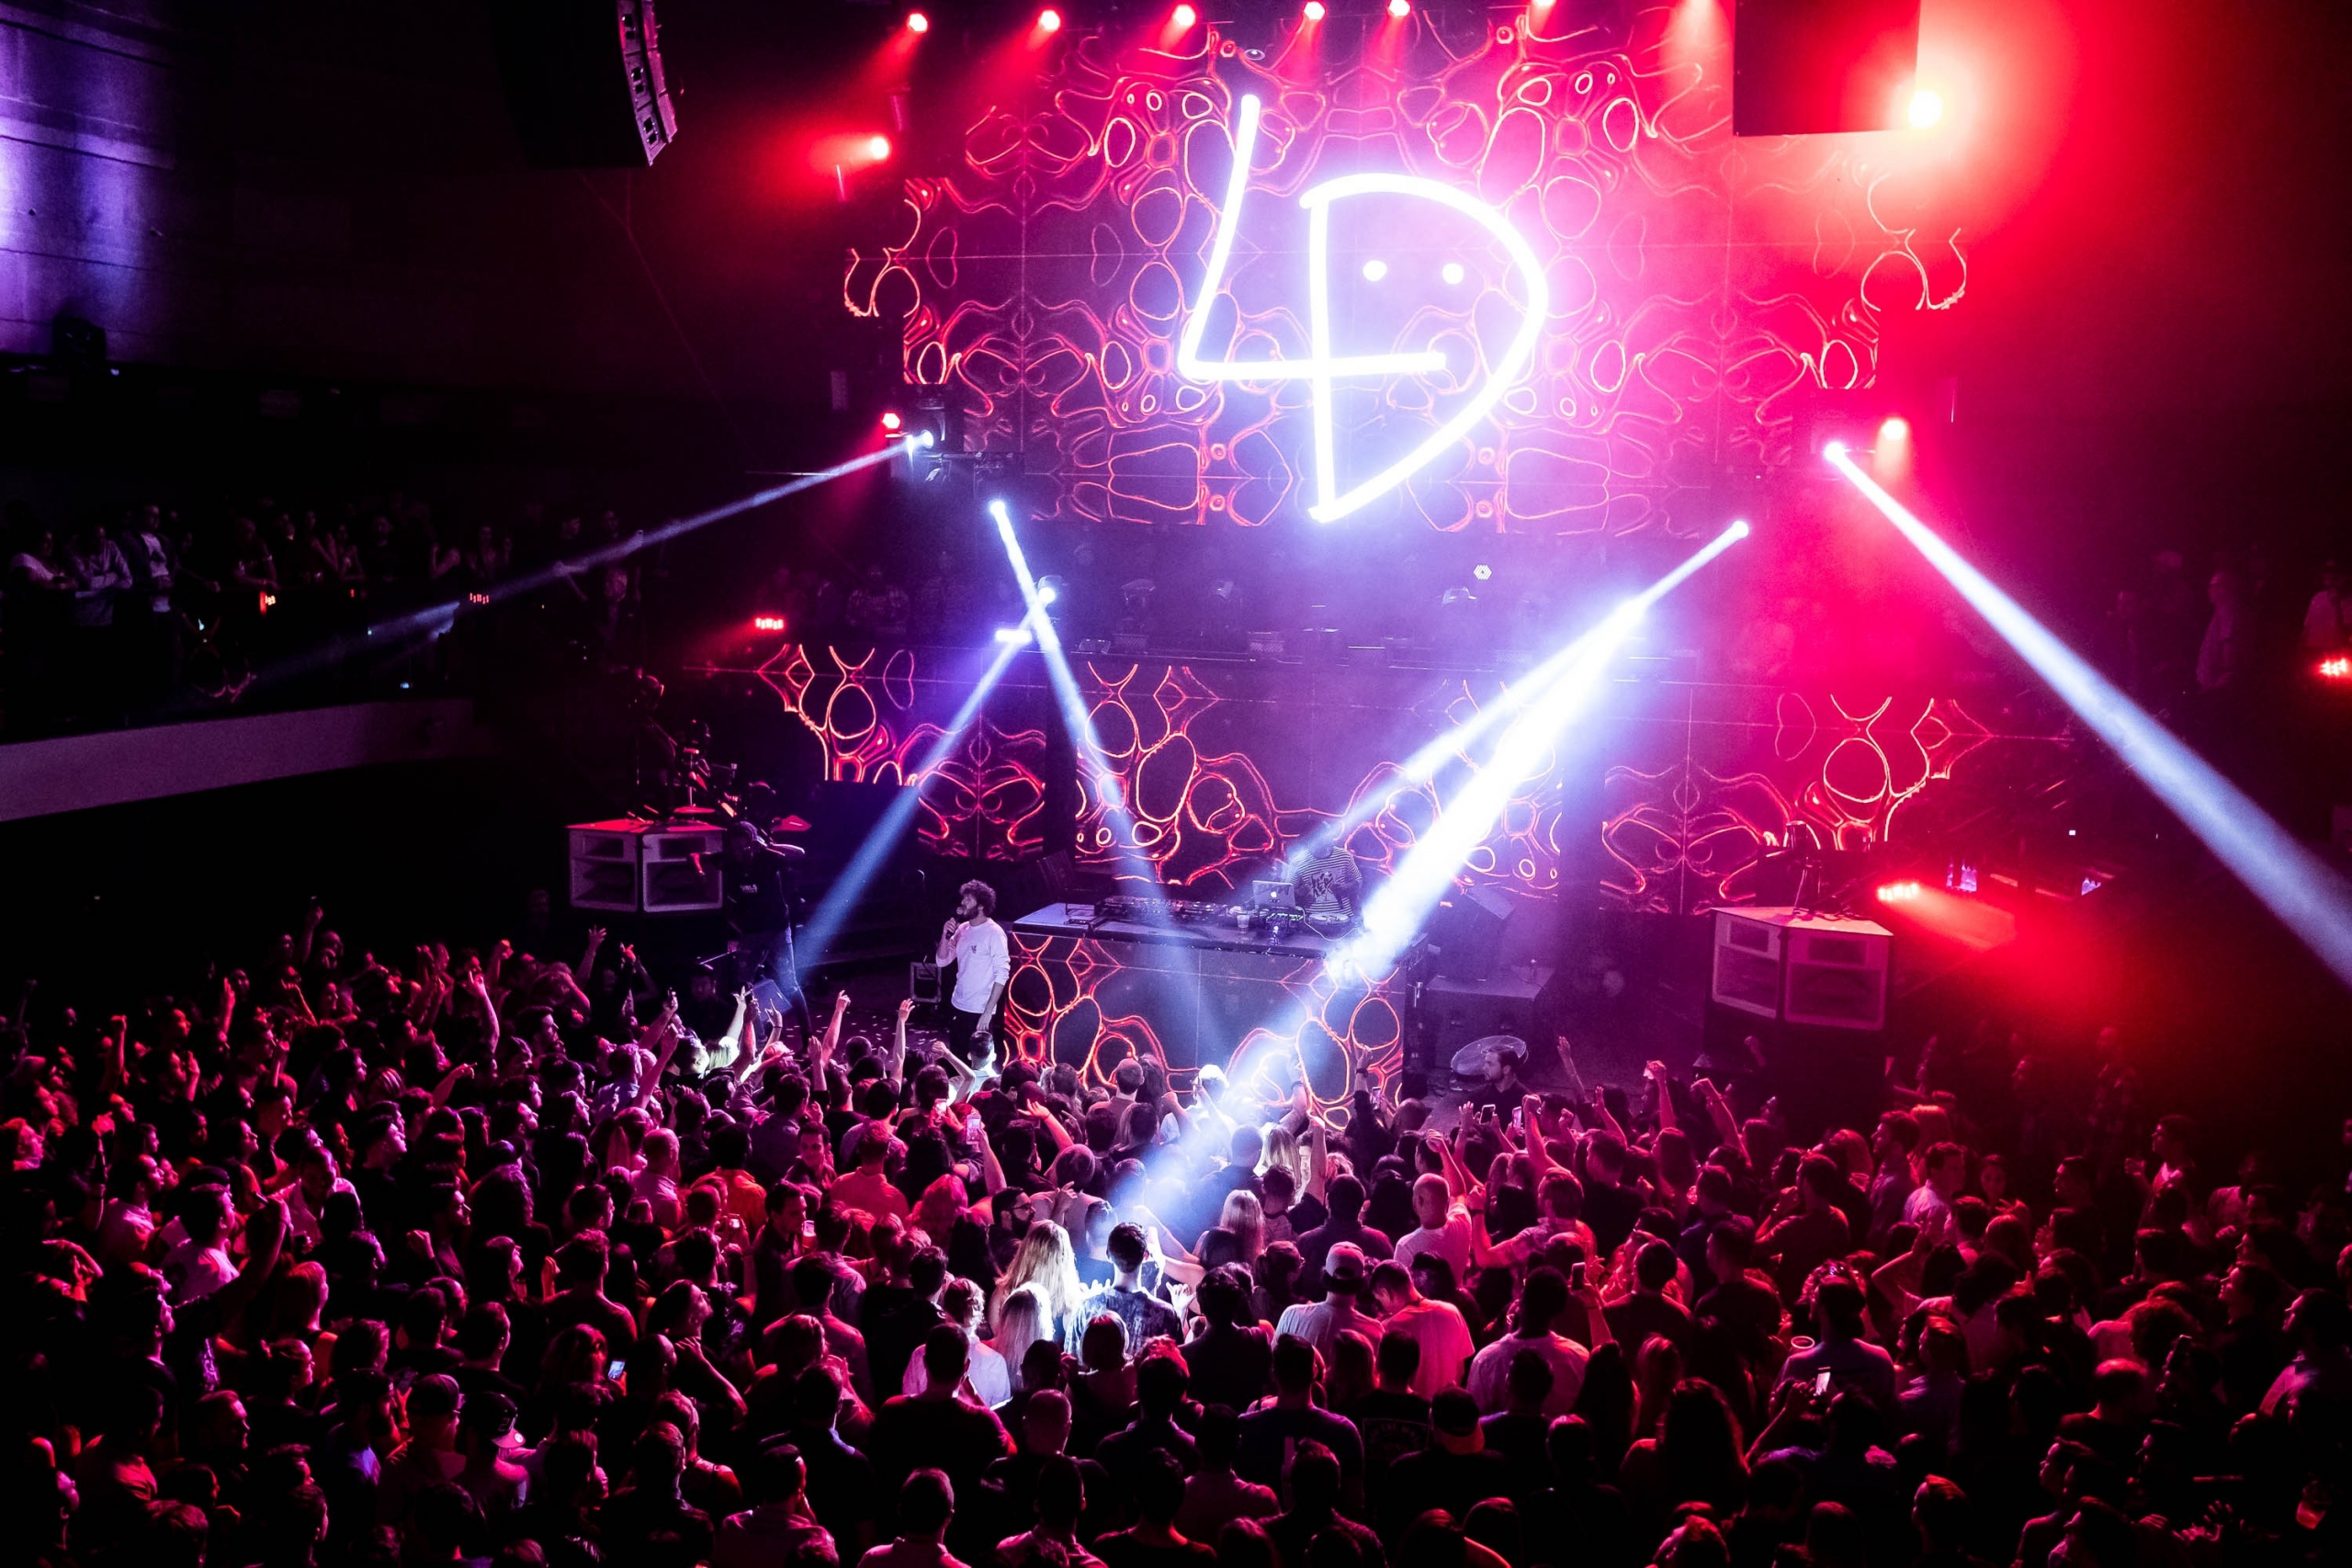 Top 10 Best Los Angeles Nightclubs and Dance Clubs in 2020 [VIDEO]